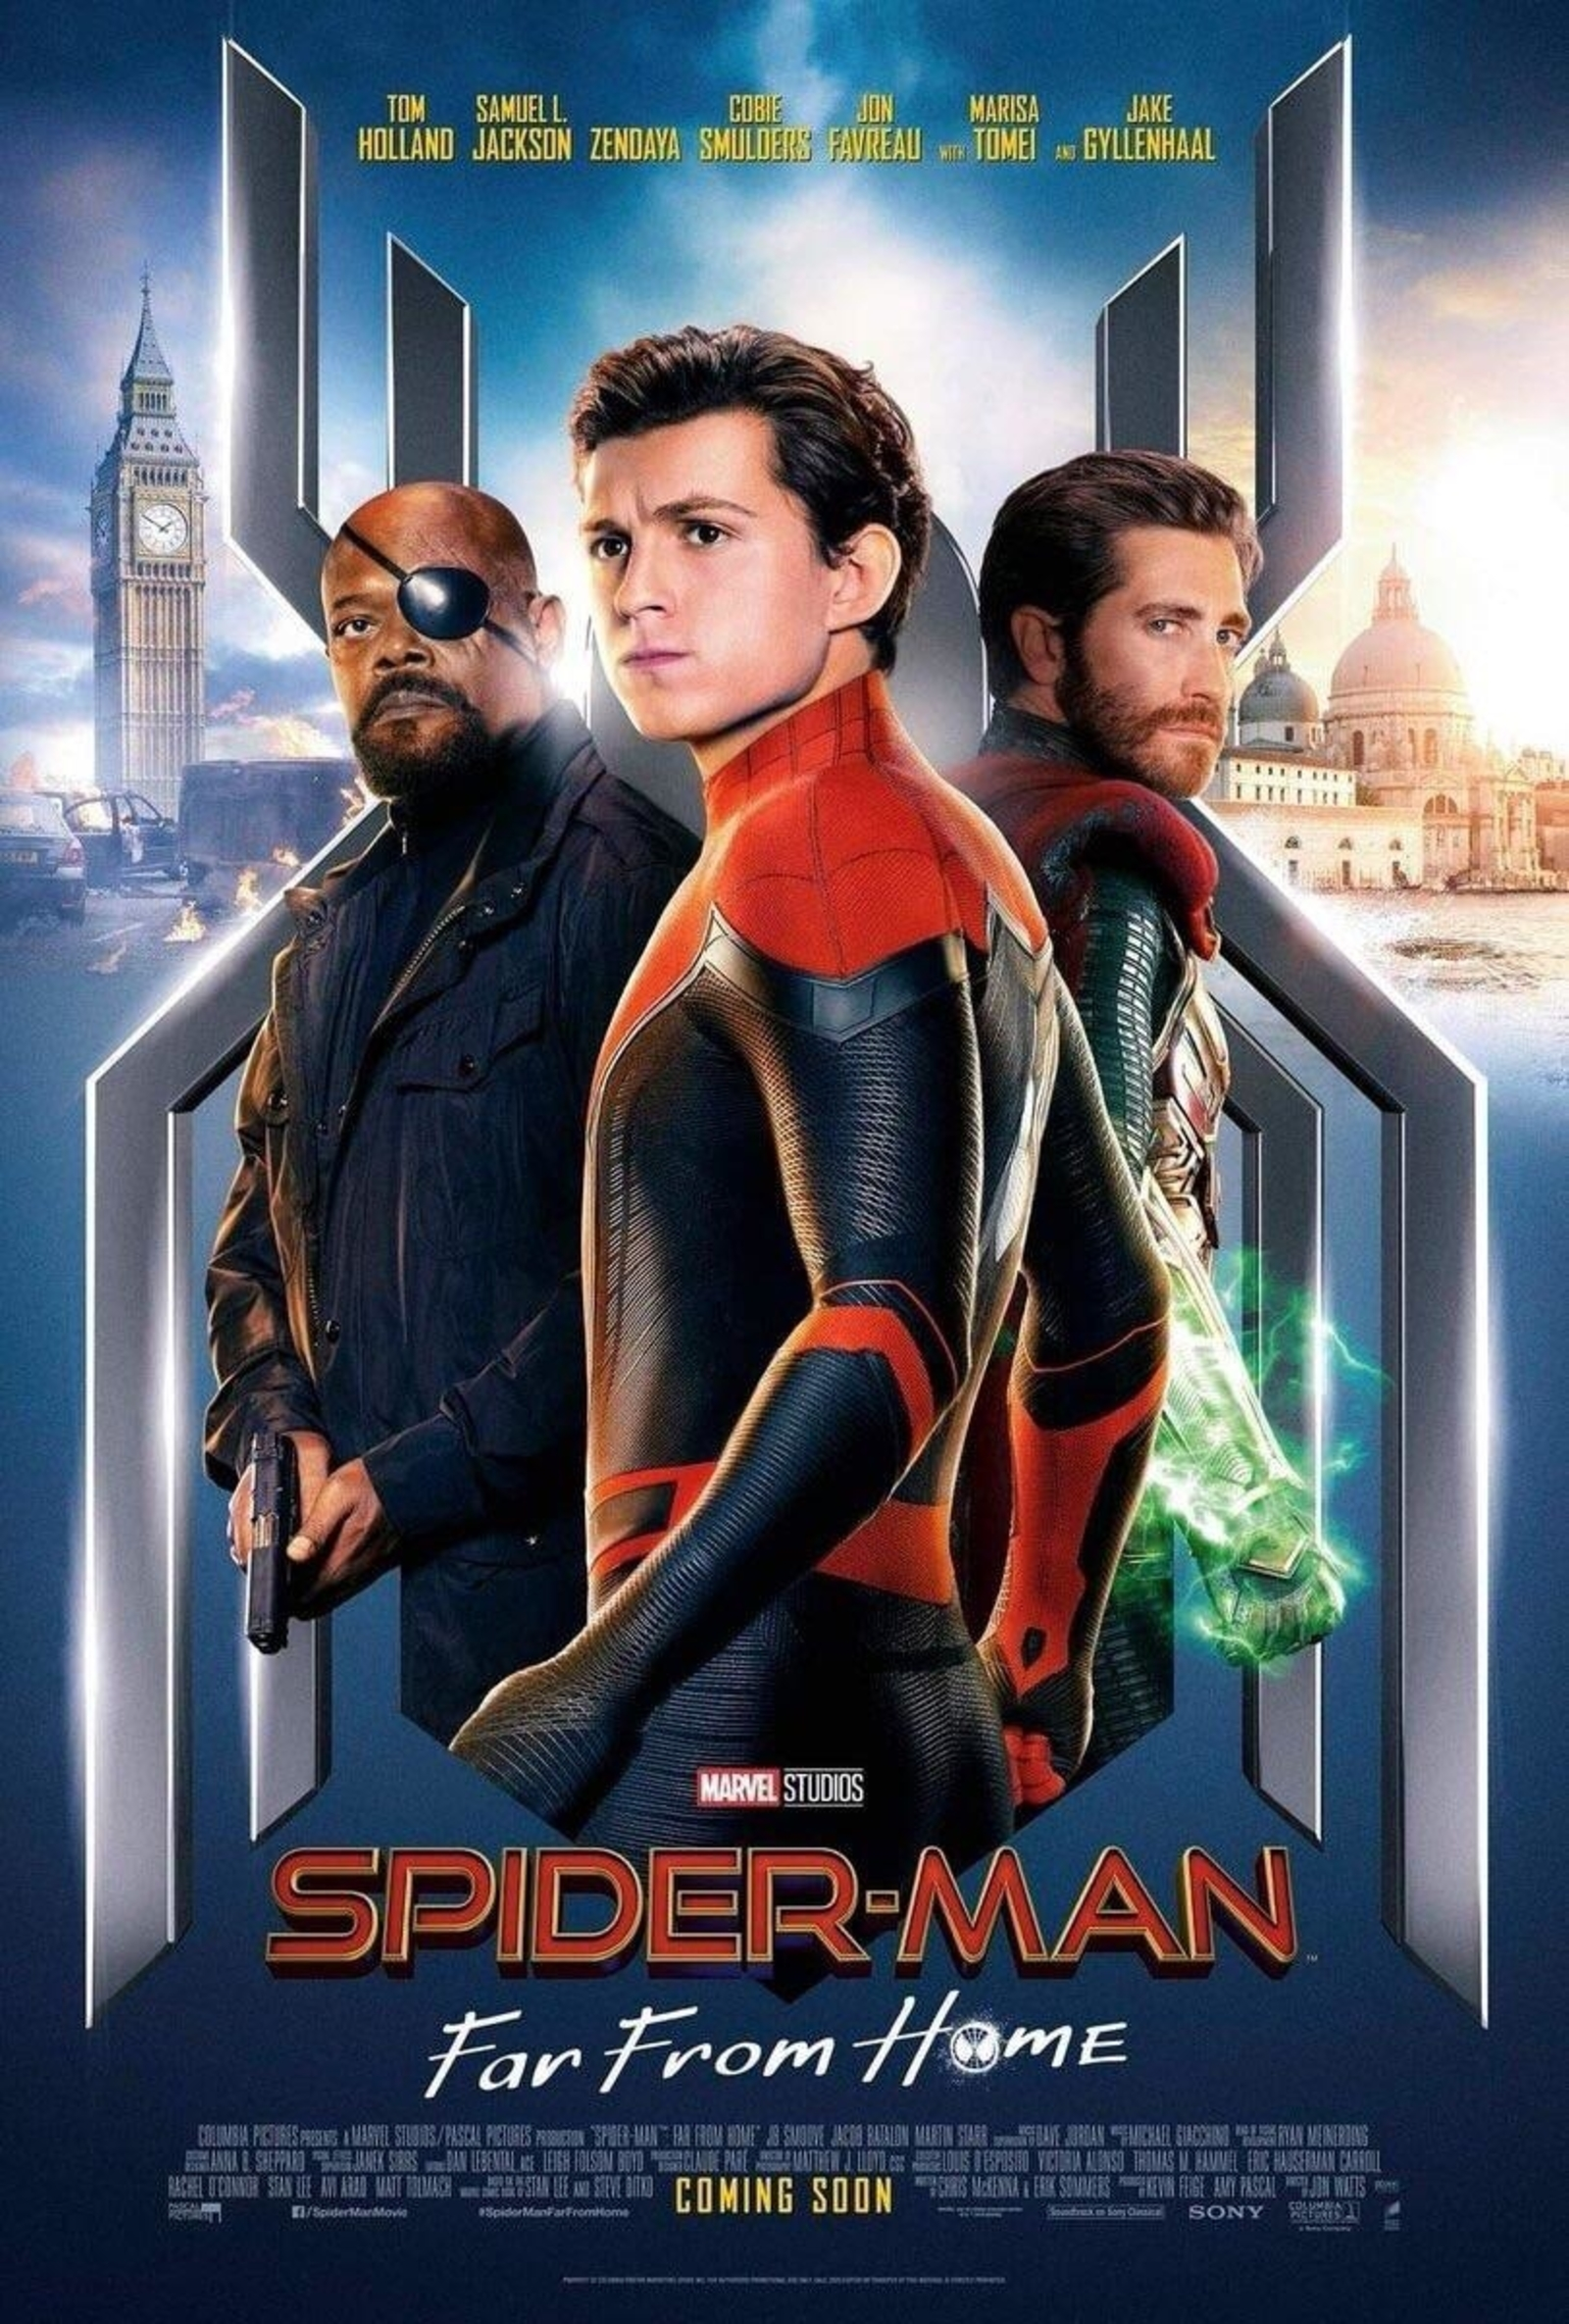 Spider Man Far from Home 2021 Bangla Dubbed Movie 720p HDRip 1GB x264 AAC *Sun Bangla Exclusive*